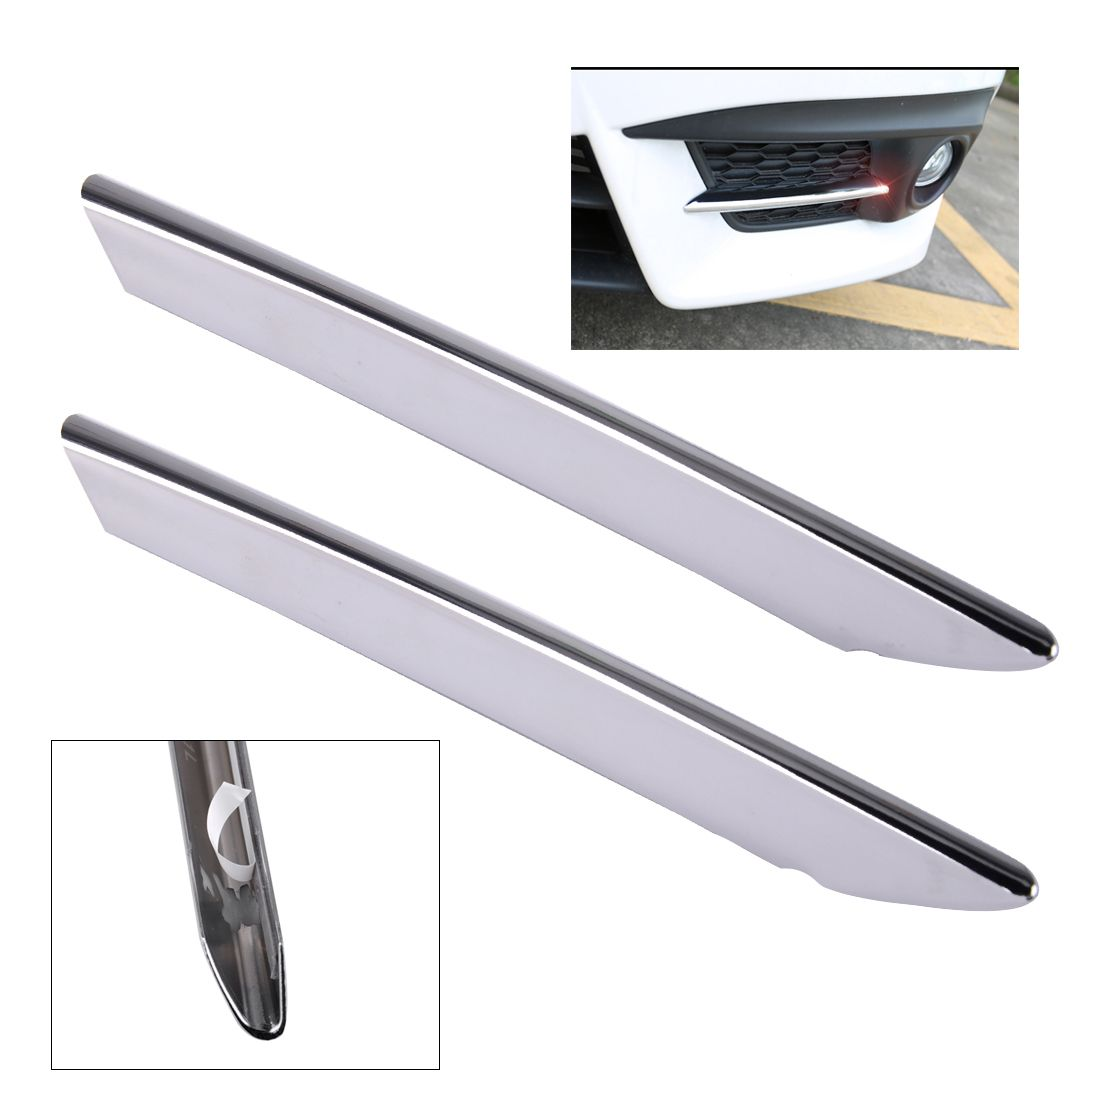 CITALL Car-styling 2pcs ABS Chrome Front Fog Light Lamp Cover Trim Fit for Honda Civic 2016 2017